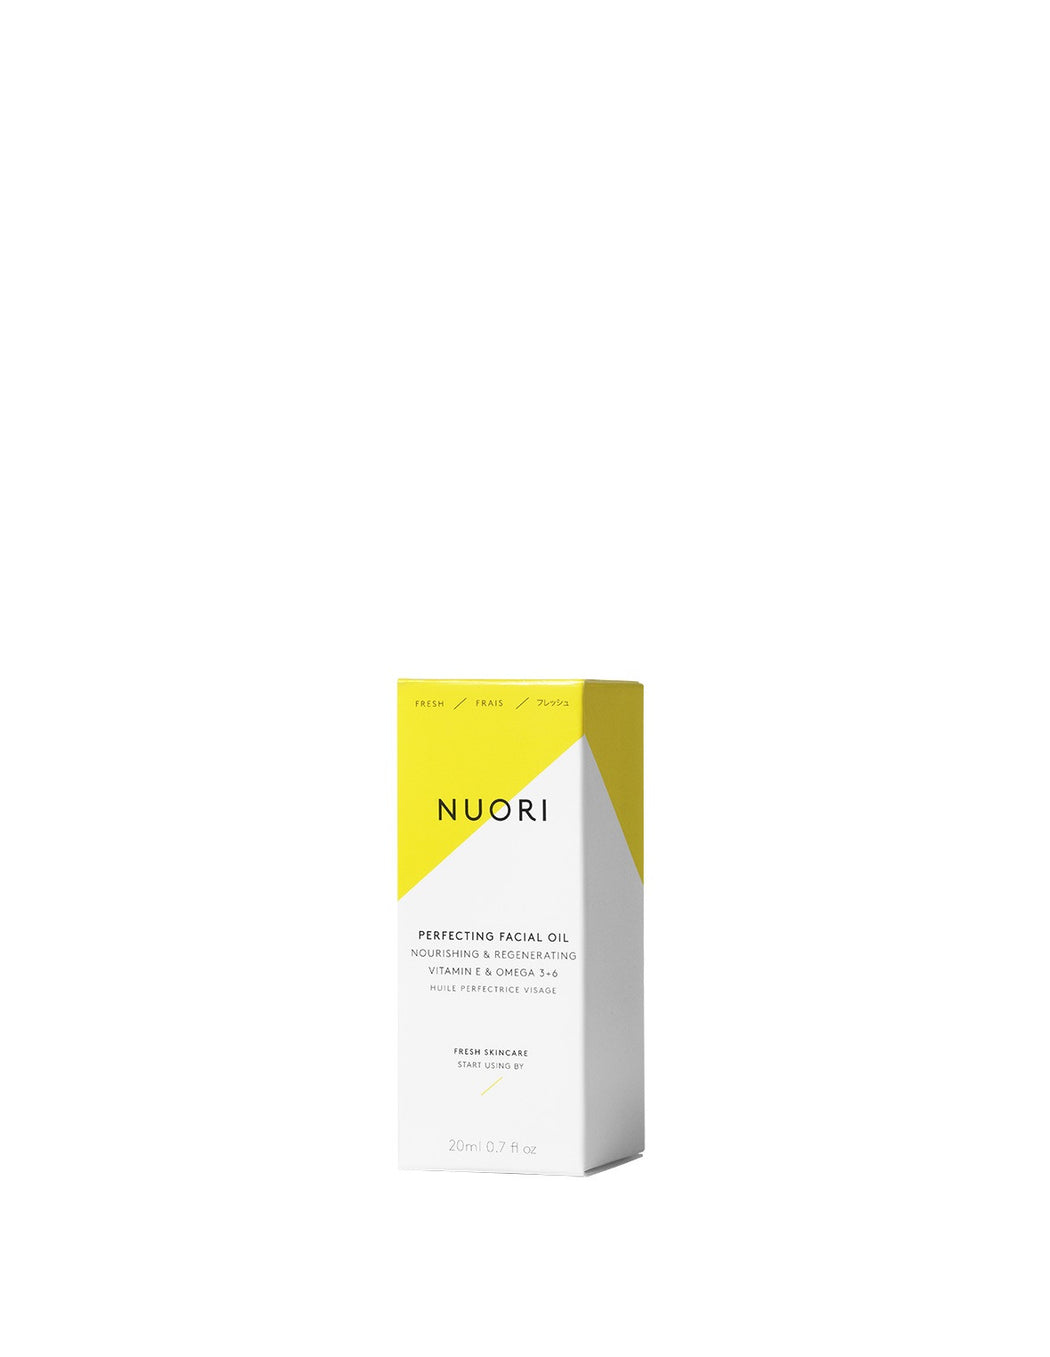 NUORI Perfecting Facial Oil 20ml